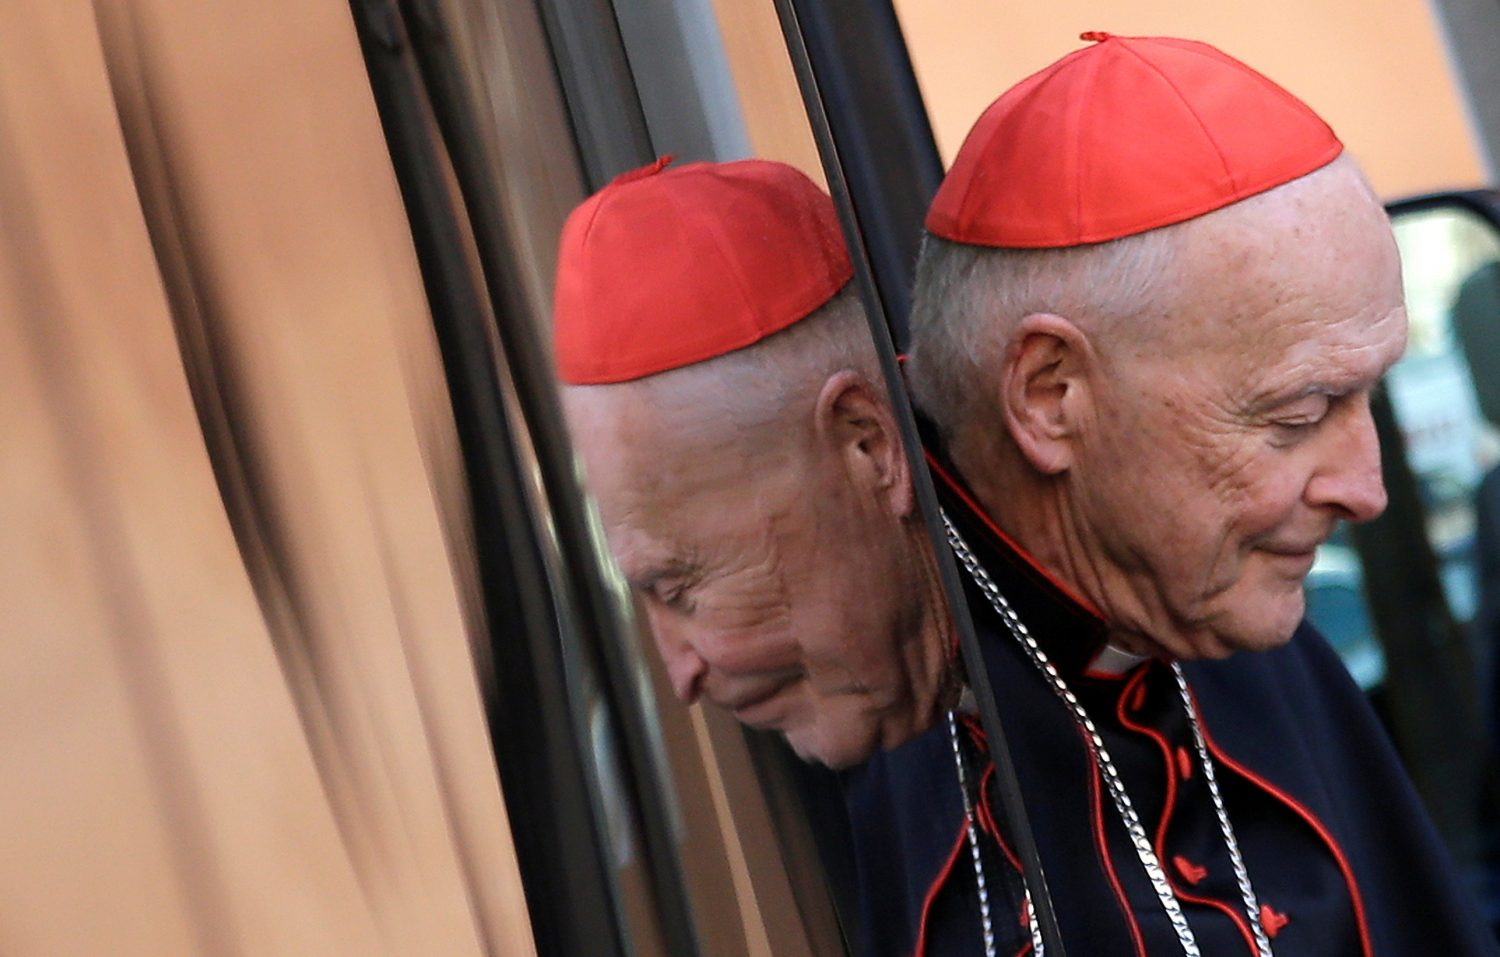 FILE PHOTO - U.S. Cardinal Theodore Edgar McCarrick arrives for a meeting at the Synod Hall in the Vatican March 4, 2013. REUTERS/Max Rossi